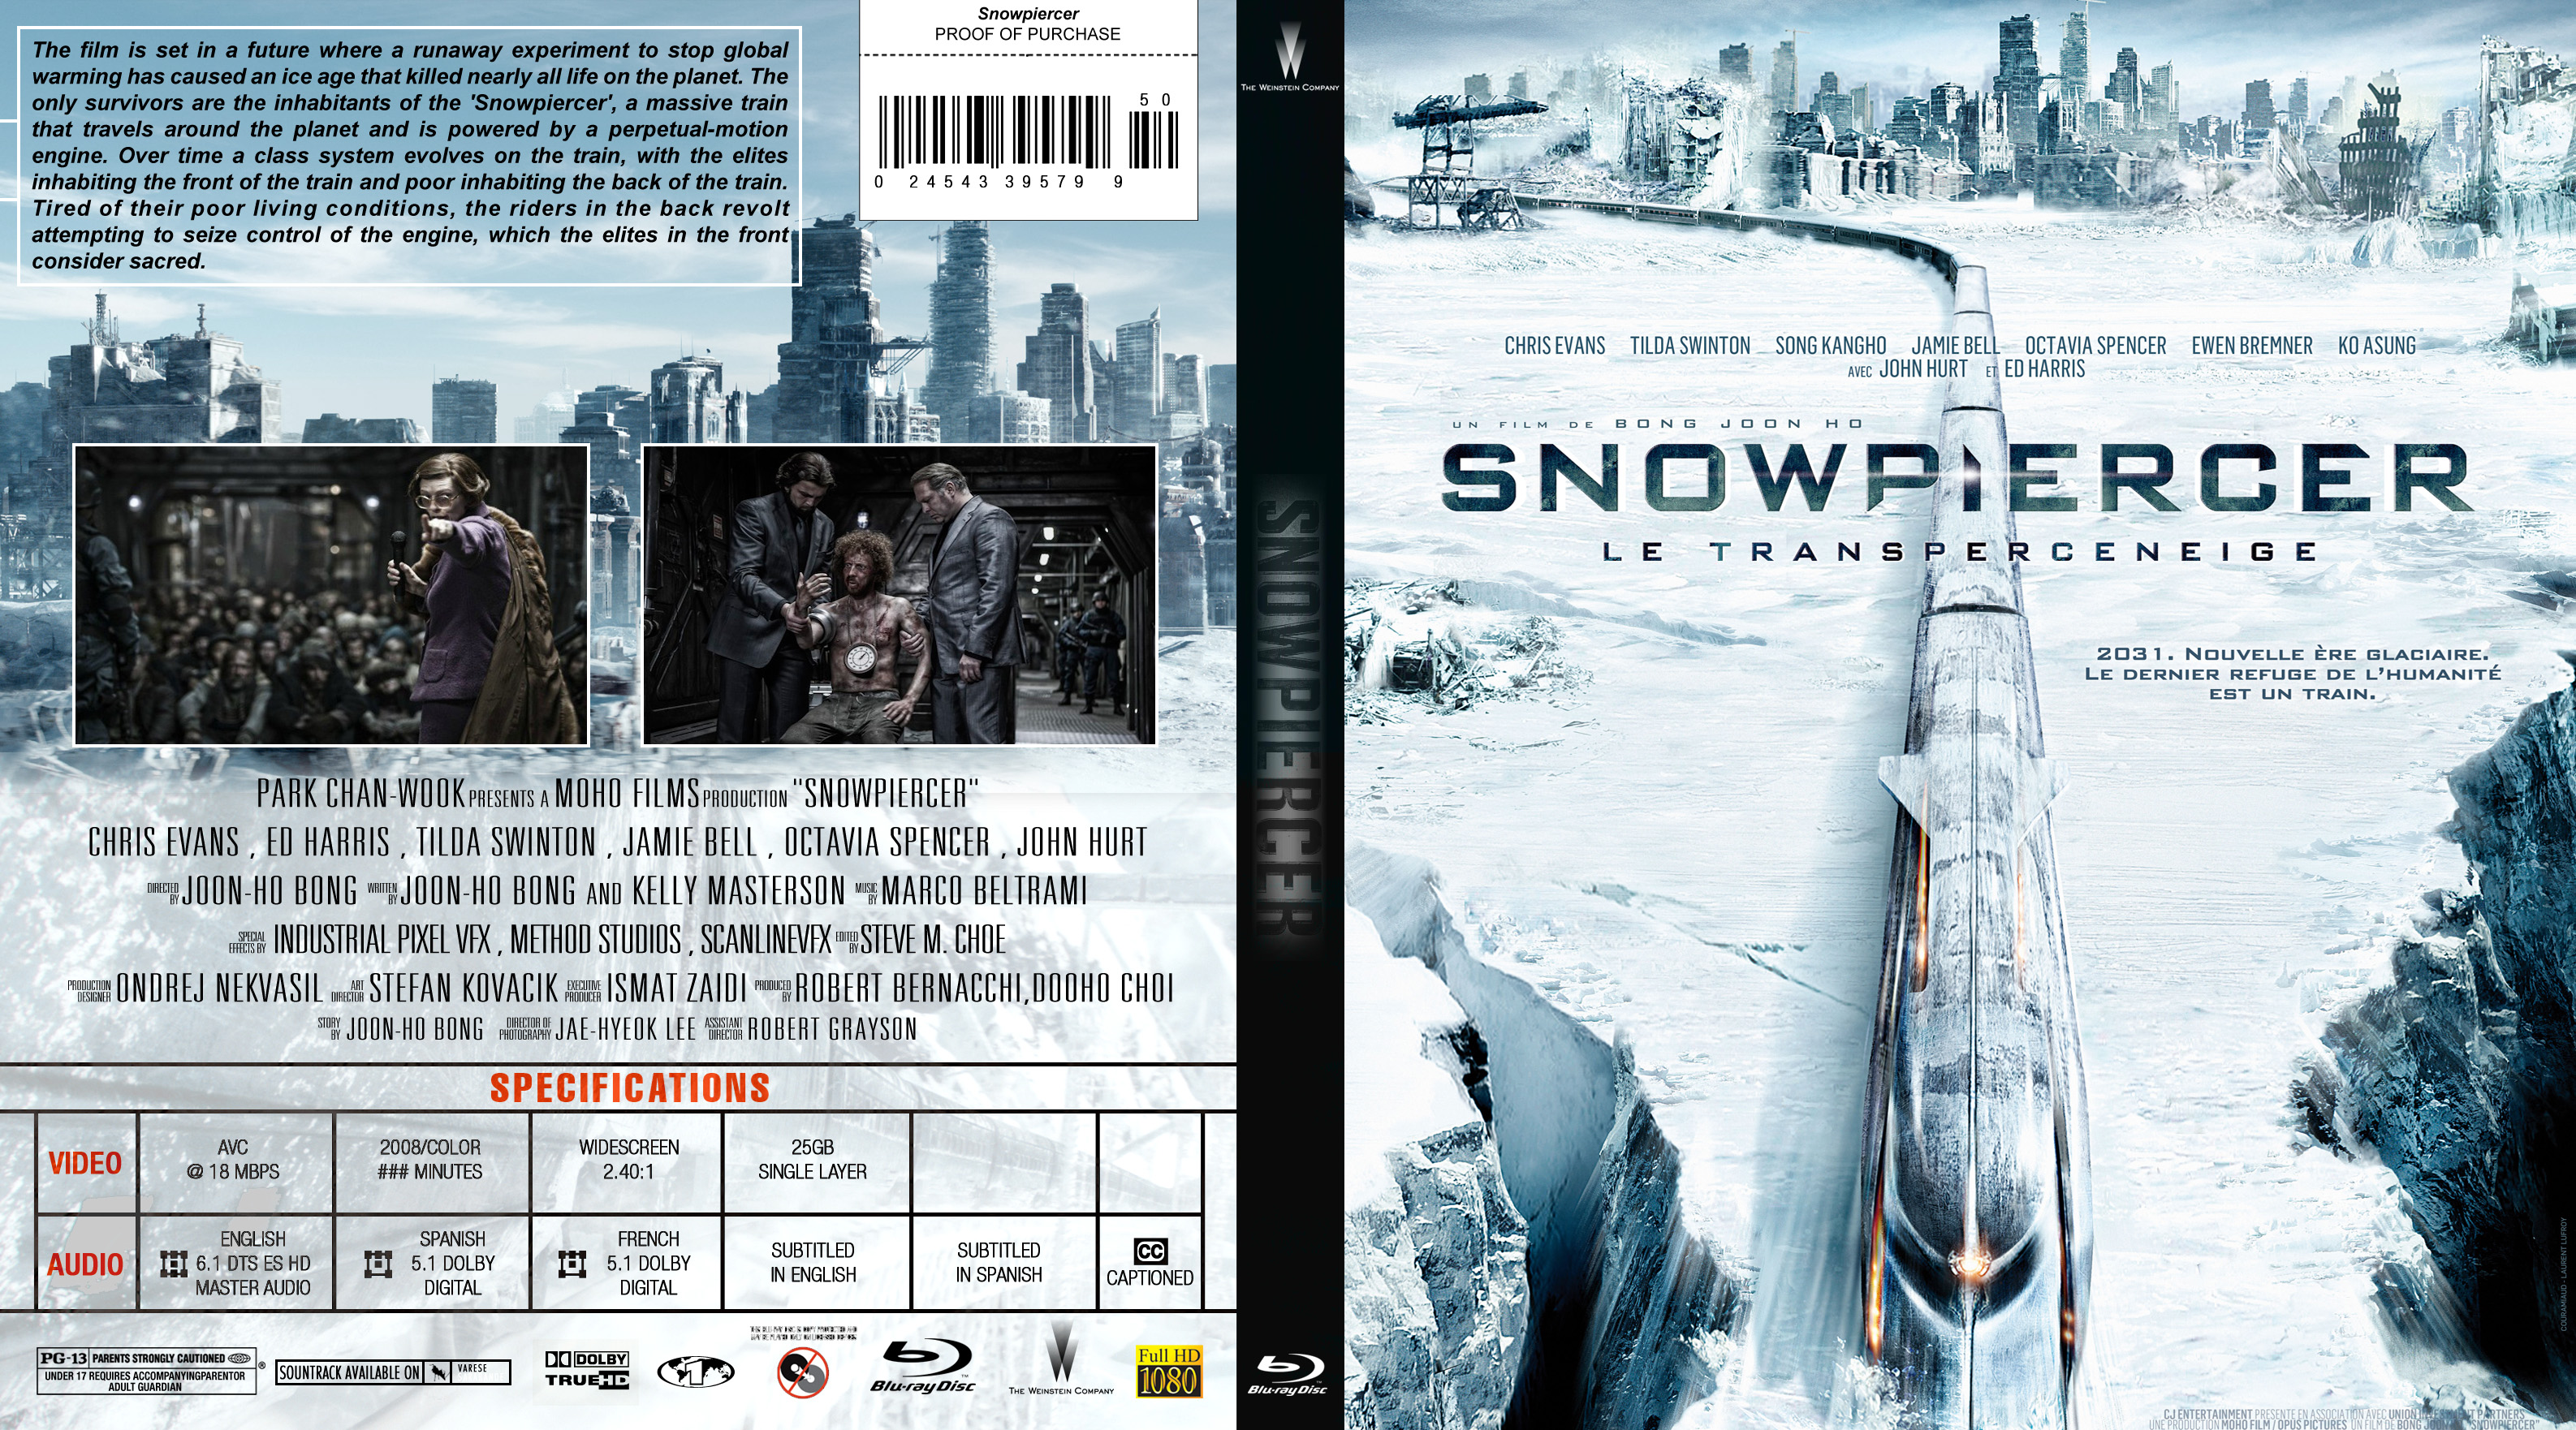 COVERS BOX SK ::: Snowpiercer (2013) Blu-ray - high quality